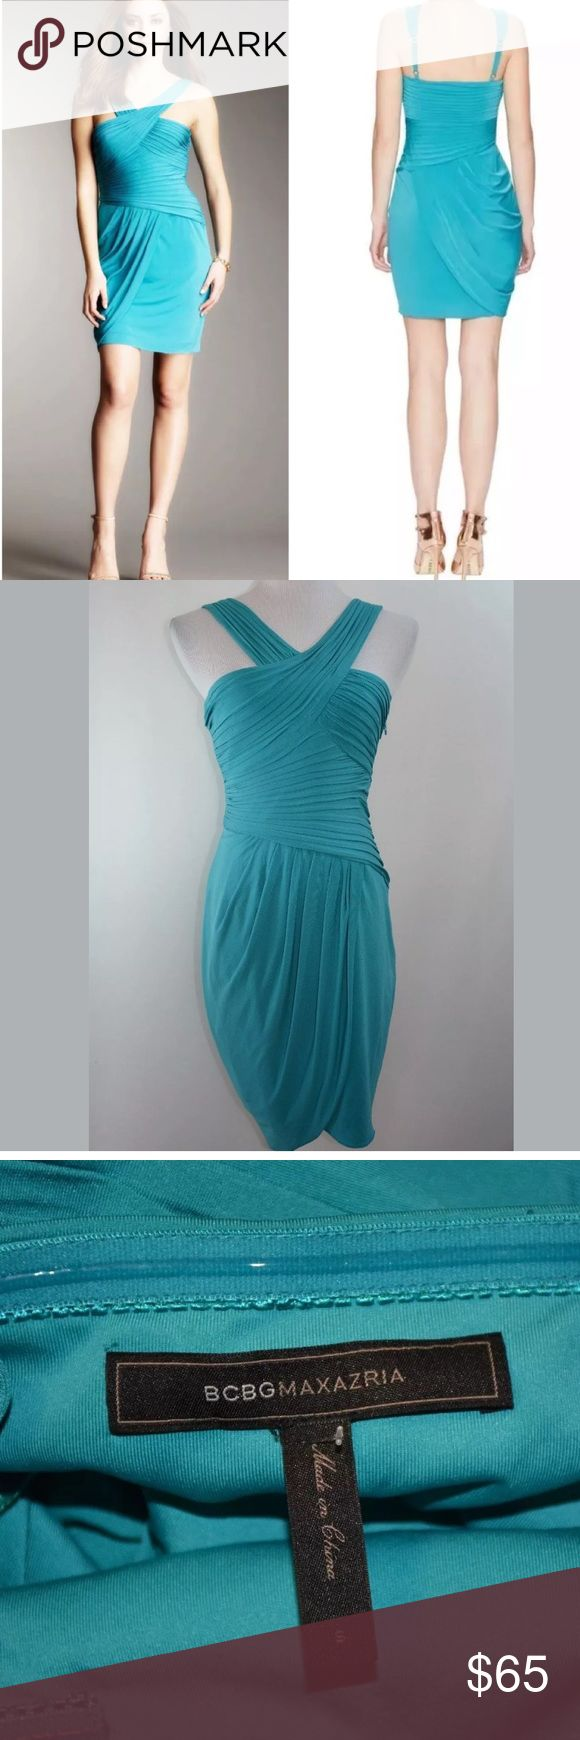 """BCBG MAX AZRIA Cock Tail Formal Dress Size Small BCBG MAX AZRIA Cocktail Formal Party Dress   Feature: Hook And Zip up in the side closure  Size- Small Color- Blue Jade  New With Tag - Never Worn  APPROXIMATE MEASUREMENT ( lying flat) Armpit to Armpit & Bust-16"""" across Waist-12"""" across From armpit to Hem-27"""" BCBGMaxAzria Dresses"""